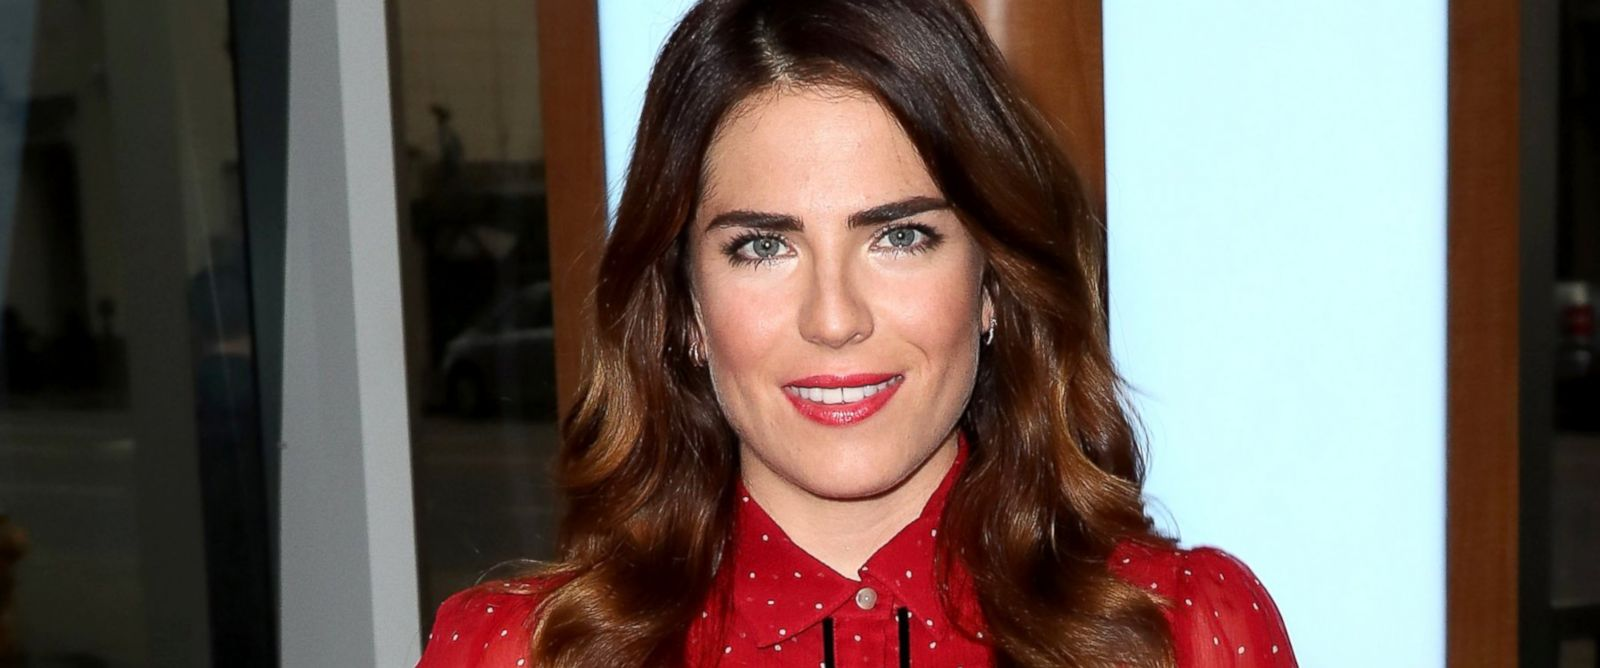 'how To Get Away With Murder' Actress Karla Souza Shares Show Secrets